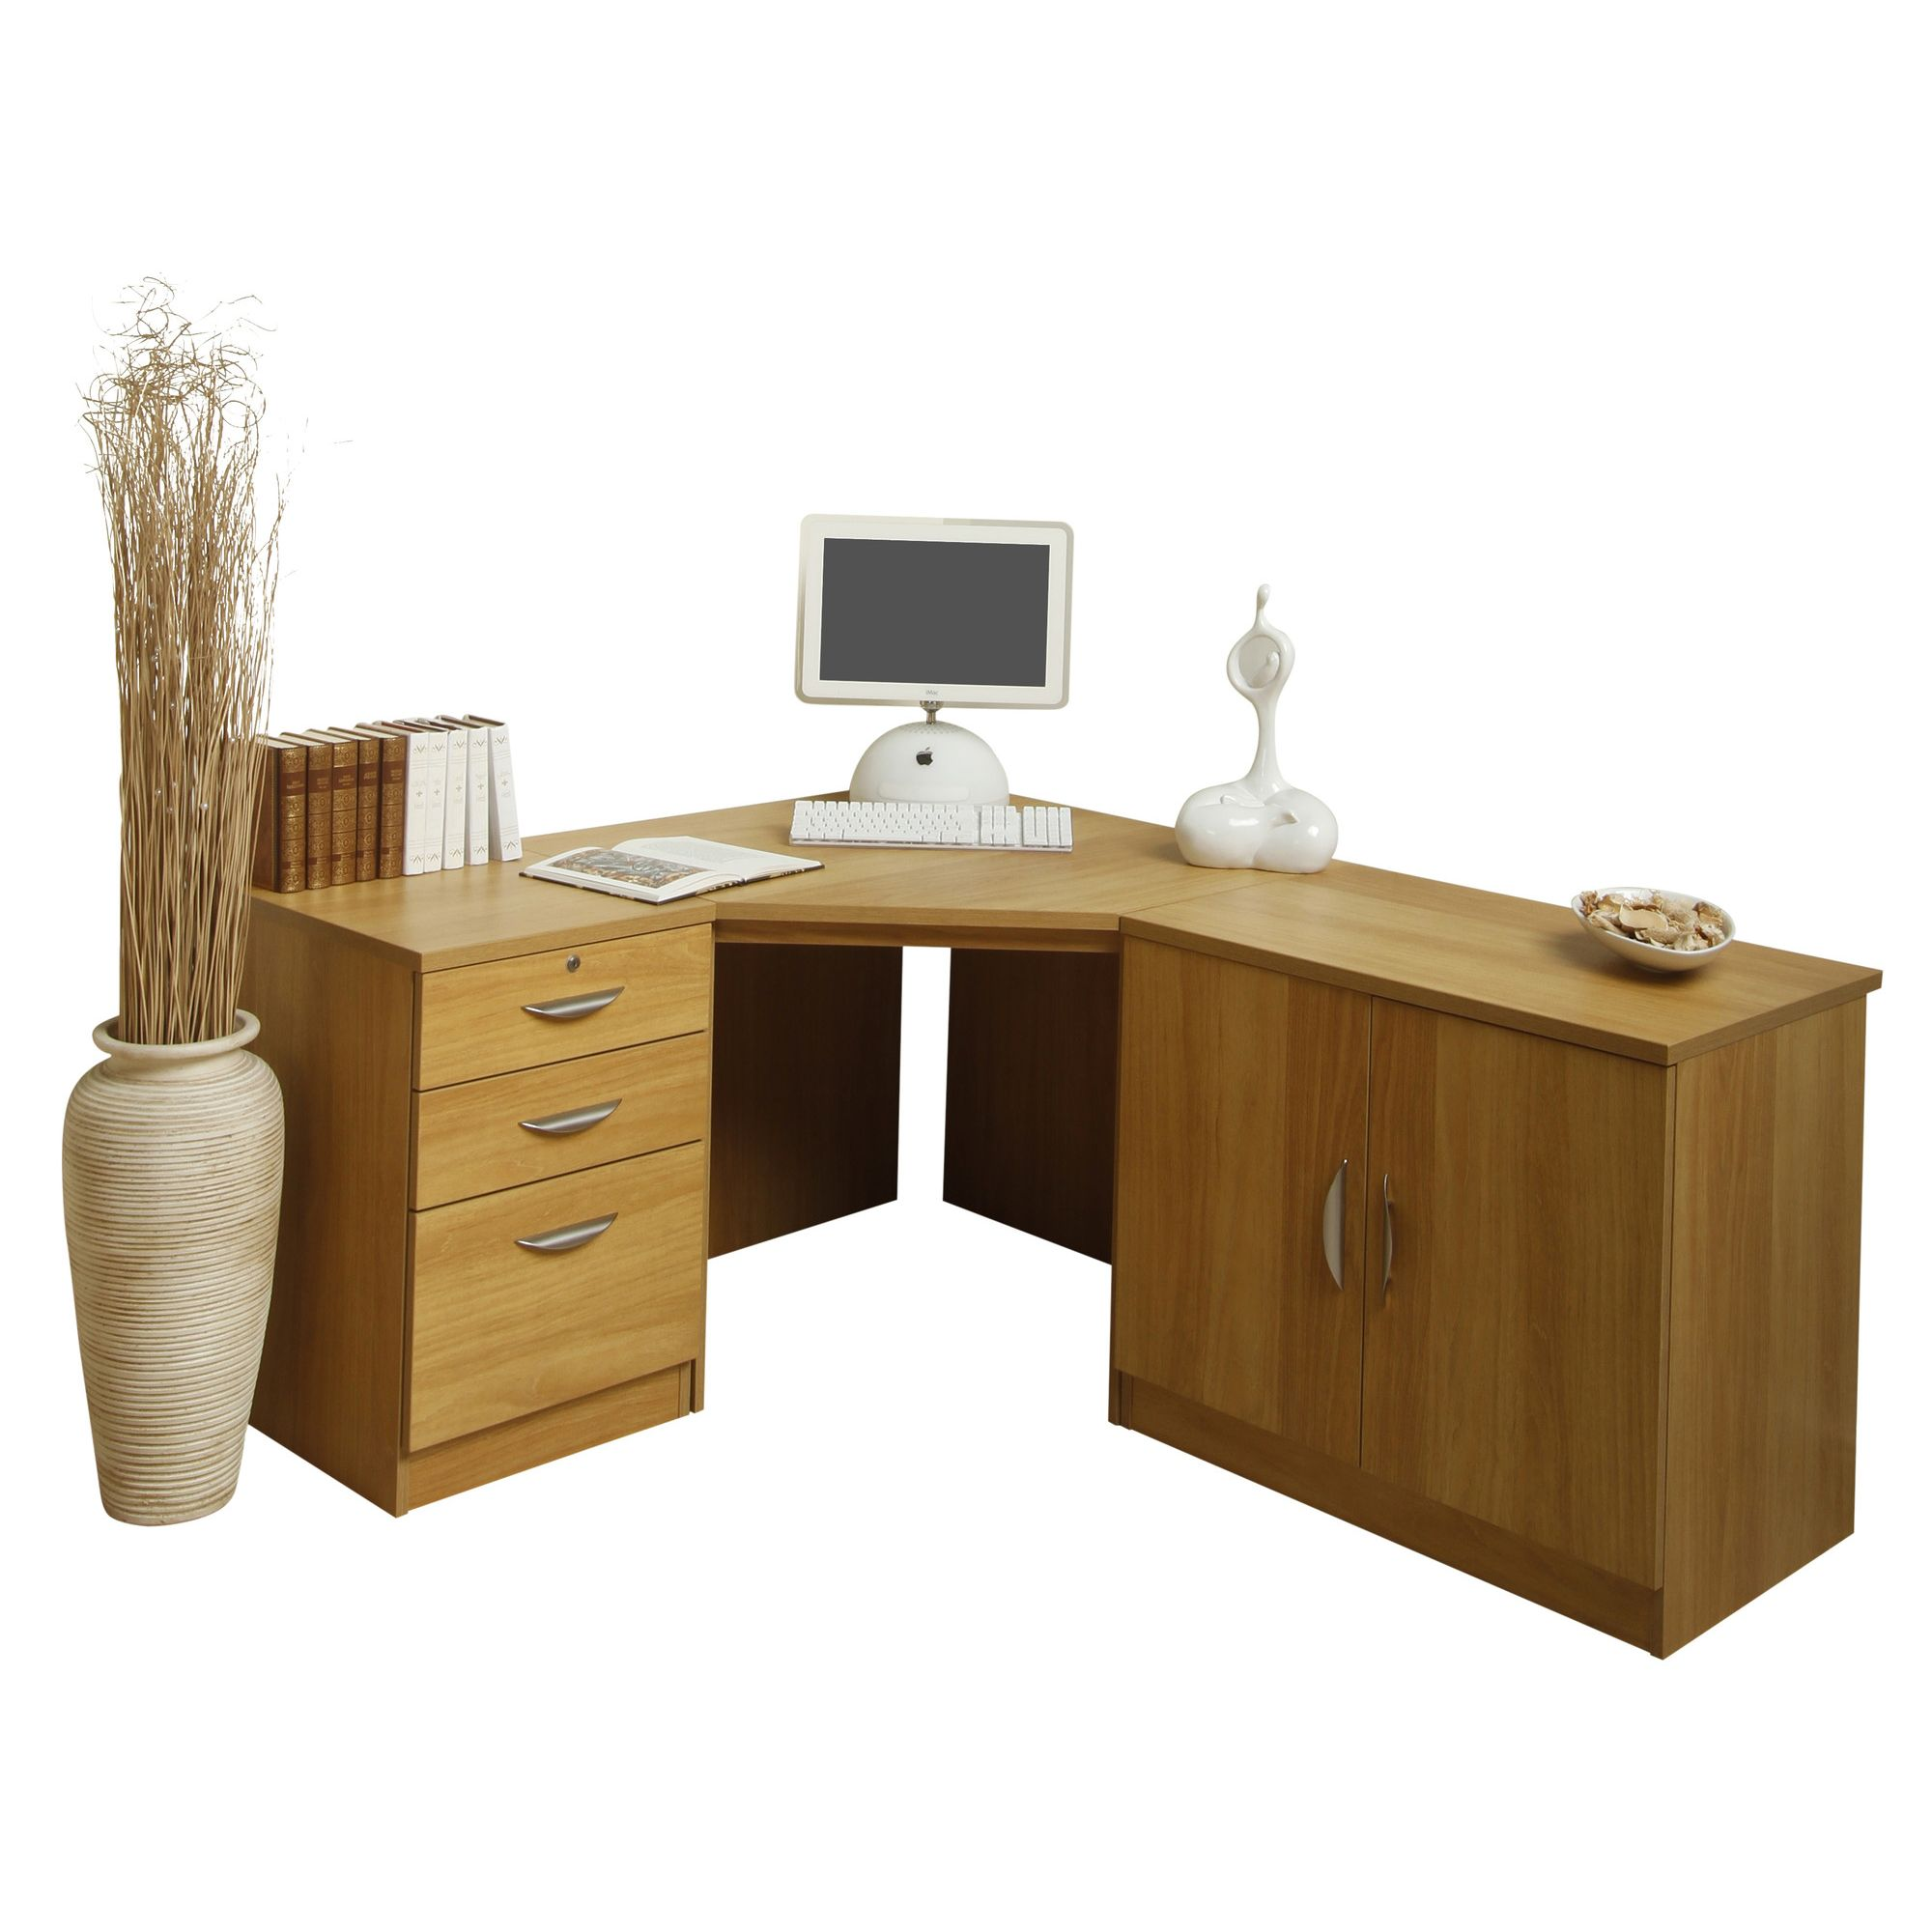 Enduro Home Office Corner Desk / Workstation with Pedestal and Cupboard - Teak at Tescos Direct